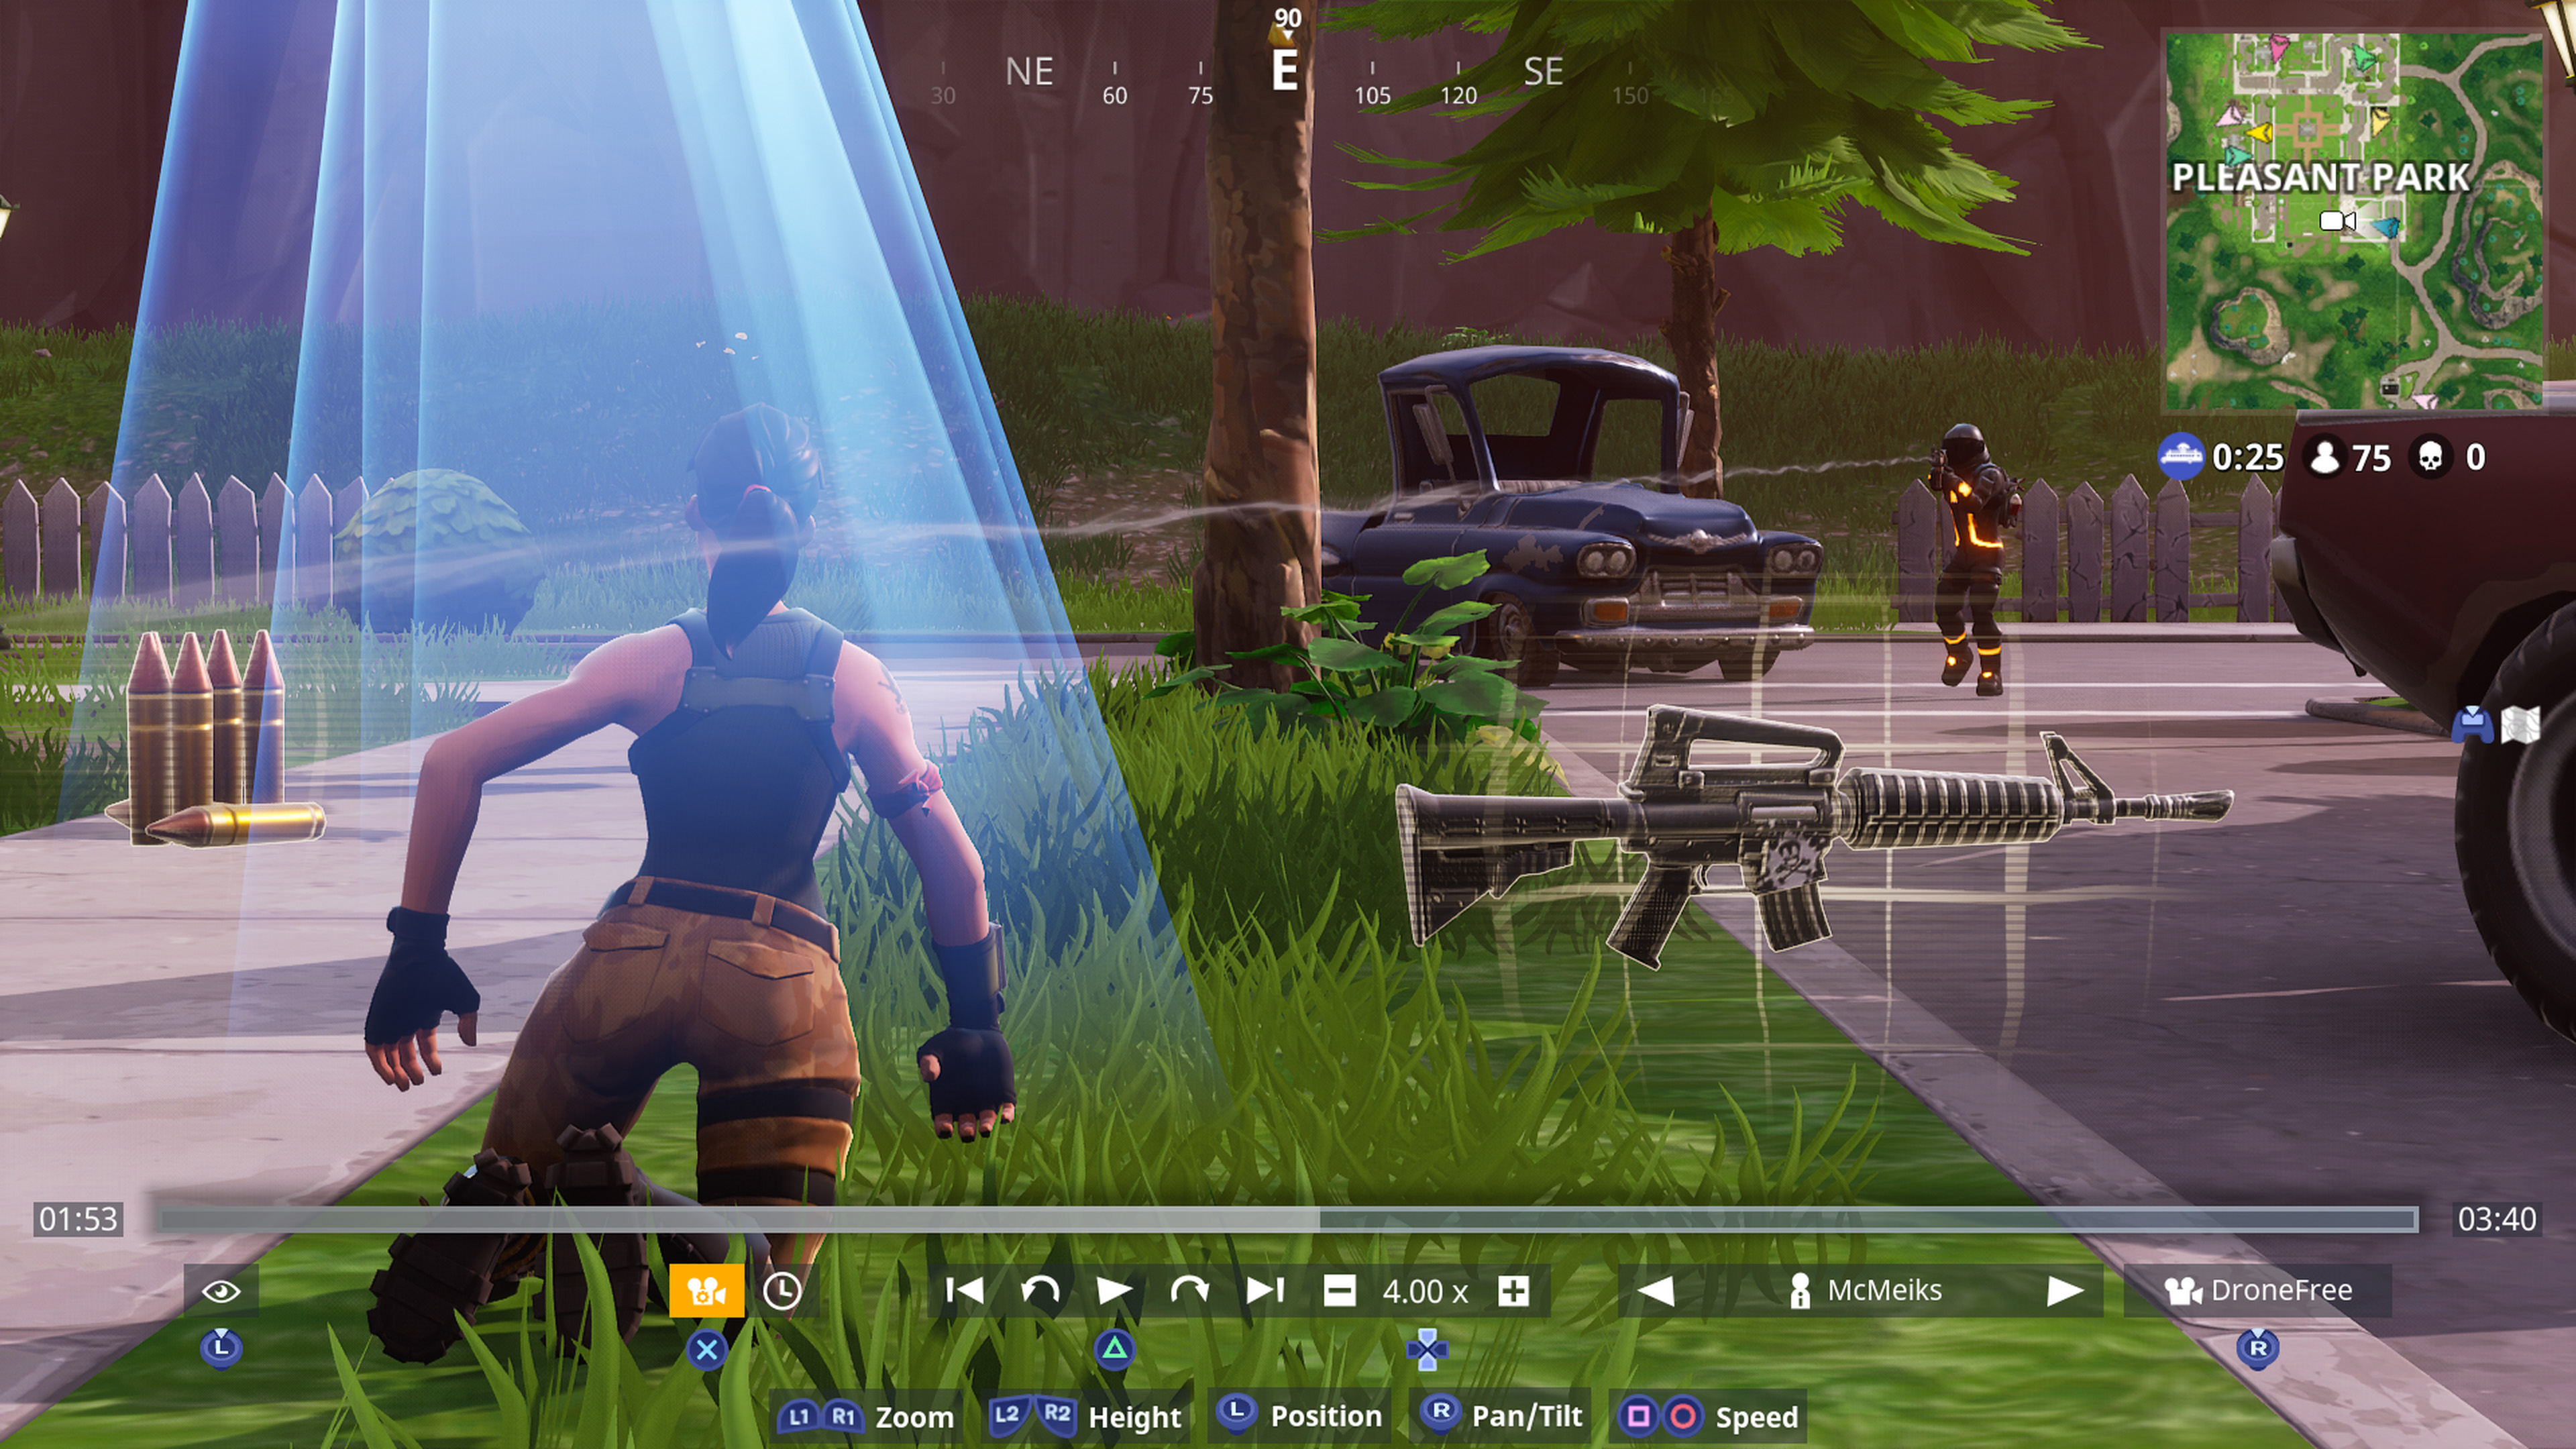 Fortnite Replay System guide: tips to watch those homicidal